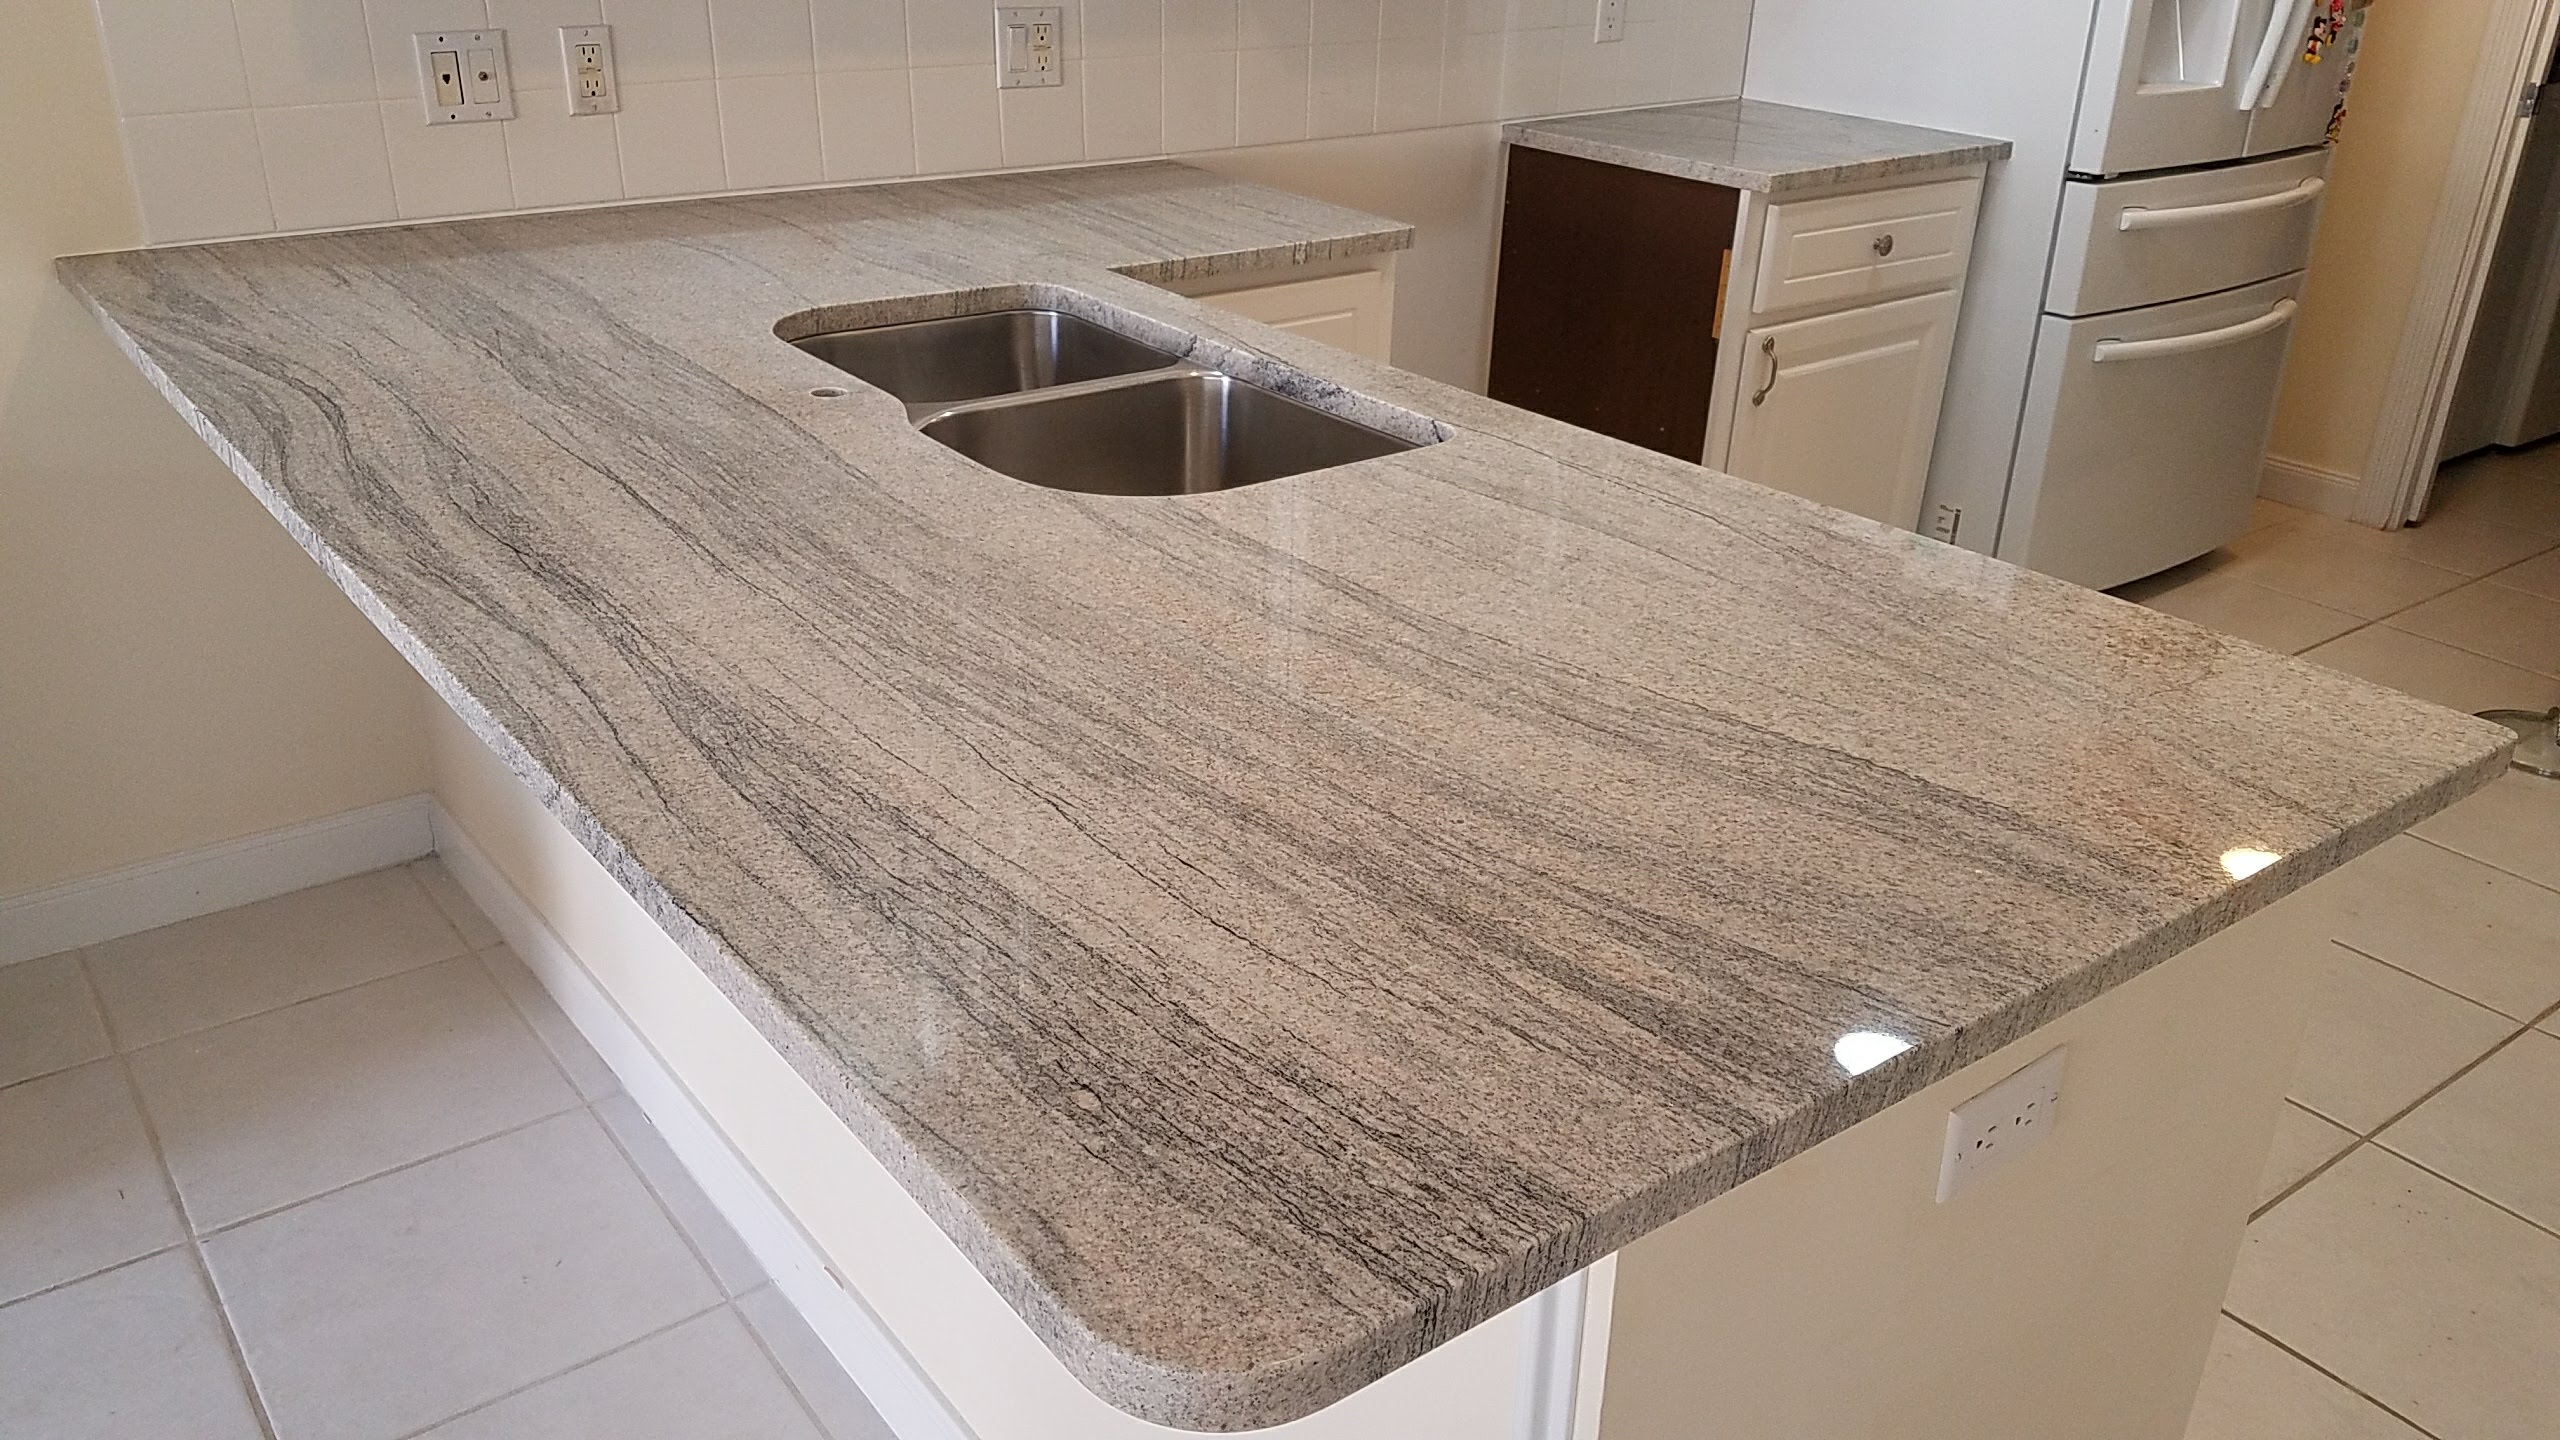 The Stone Quarry Of Jupiter For All Your Granite And